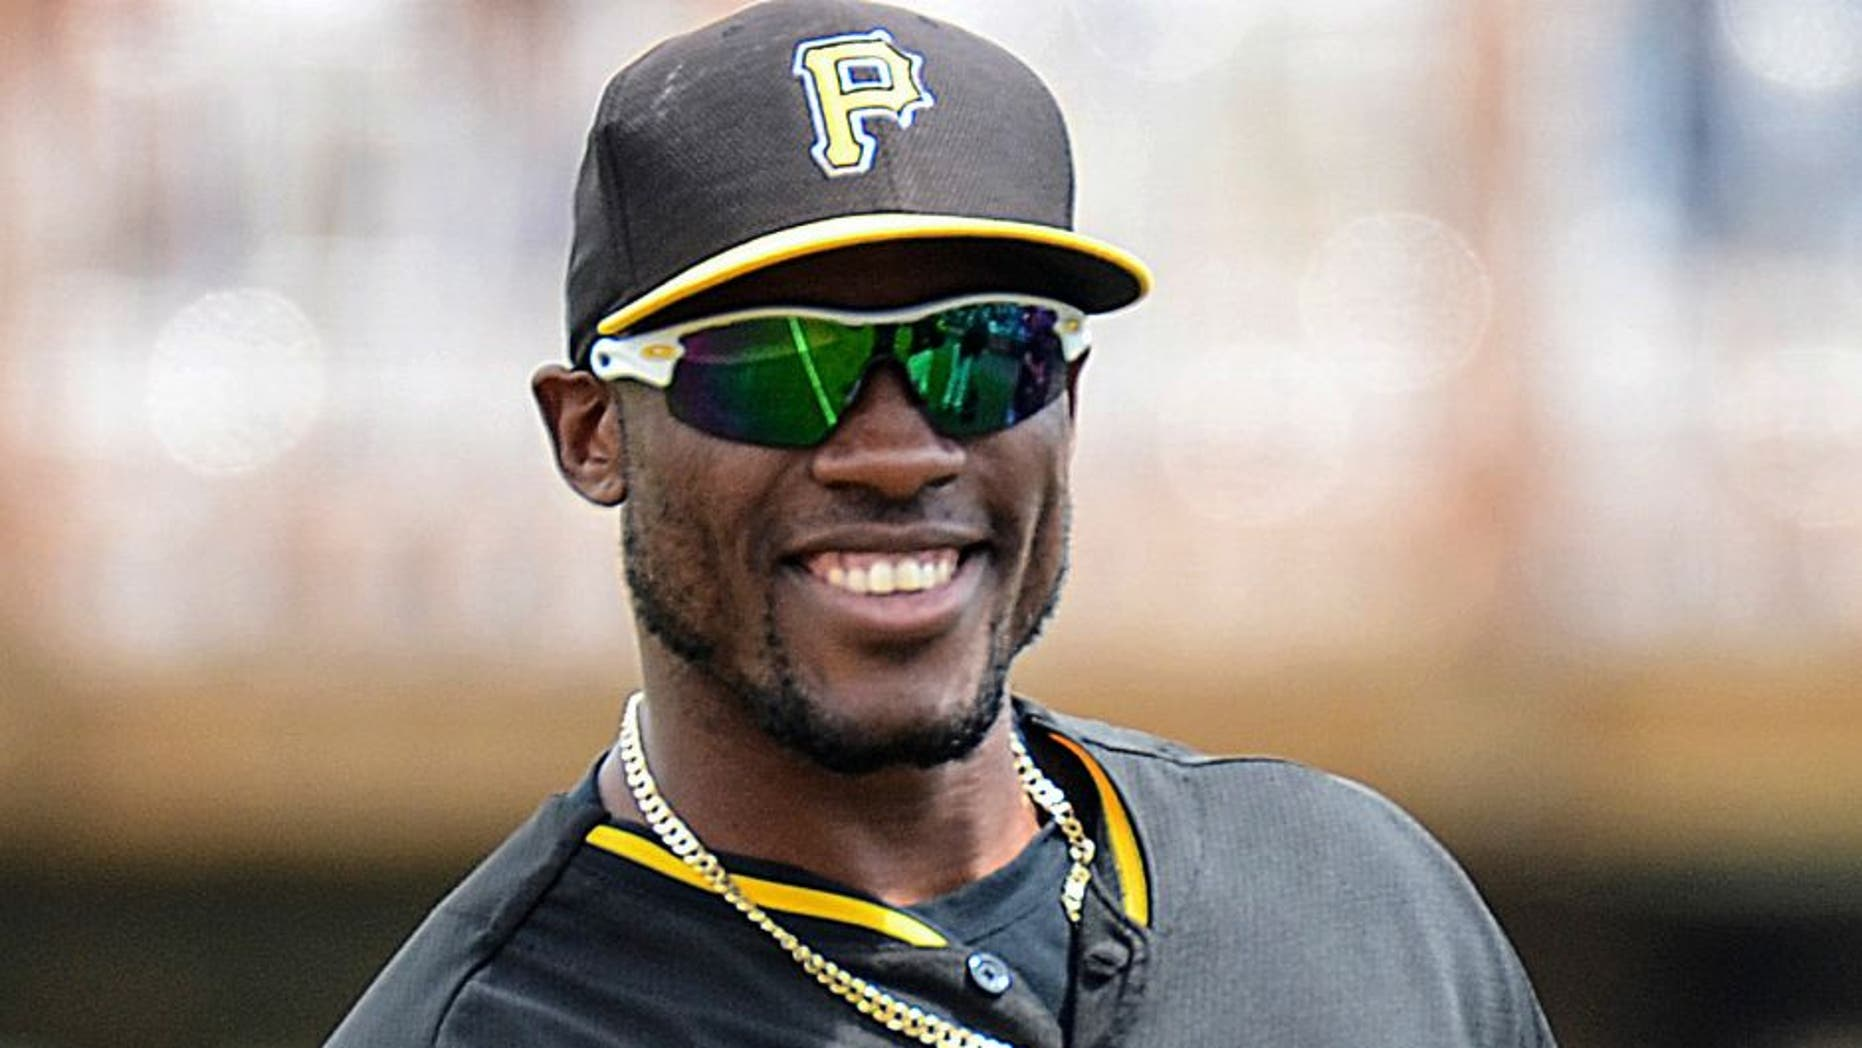 Mar 25, 2014; Bradenton, FL, USA; Pittsburgh Pirates outfielder Starling Marte (6) smiles before the start of the spring training exhibition game against the Toronto Blue Jays at McKechnie Field. Mandatory Credit: Jonathan Dyer-USA TODAY Sports